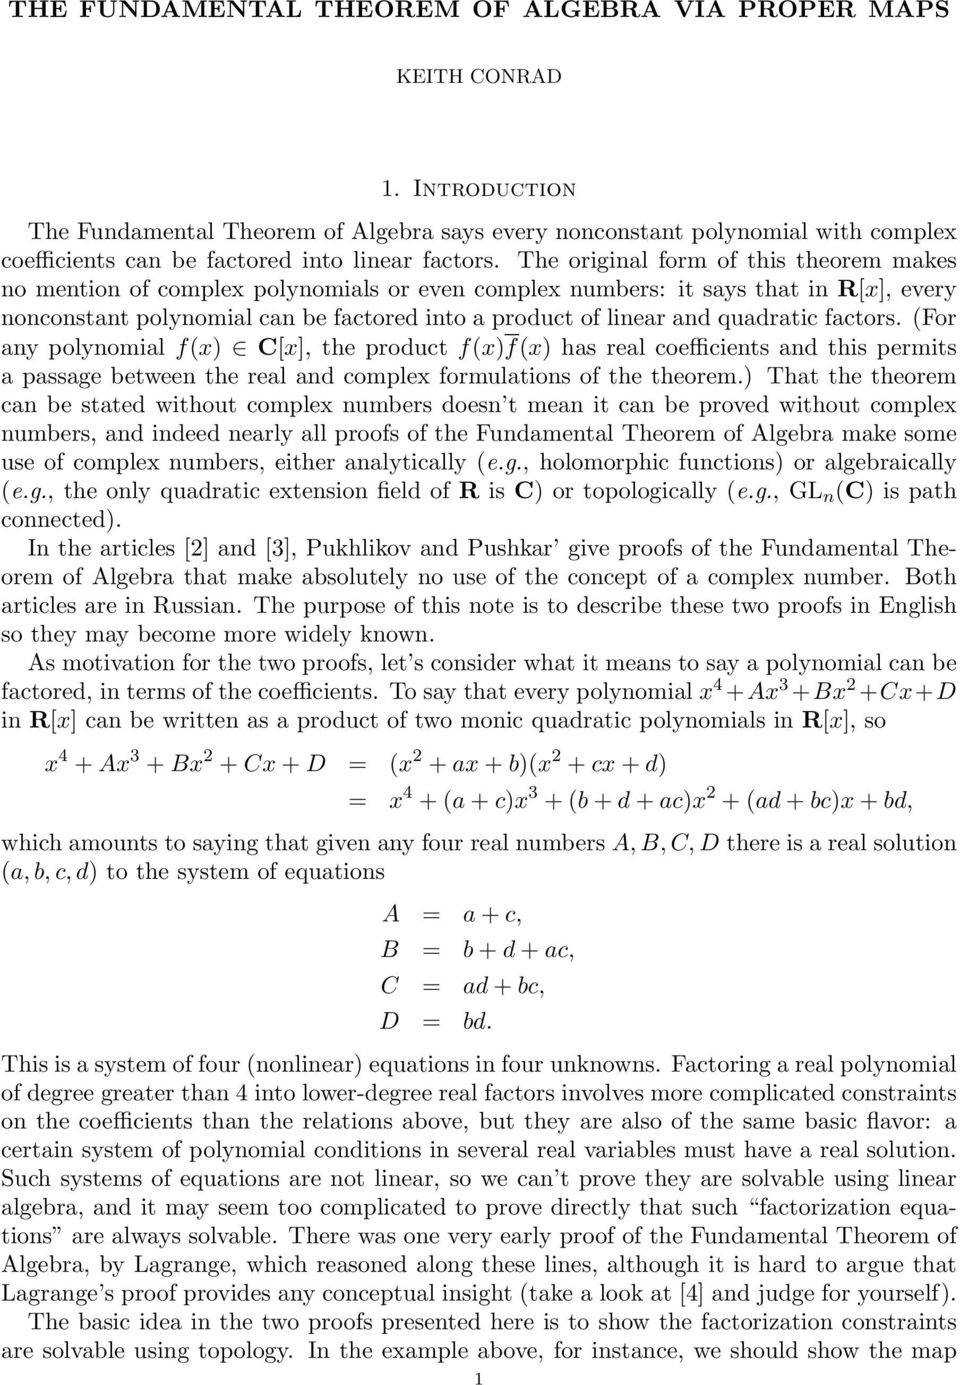 The original form of this theorem makes no mention of complex polynomials or even complex numbers: it says that in R[x], every nonconstant polynomial can be factored into a product of linear and